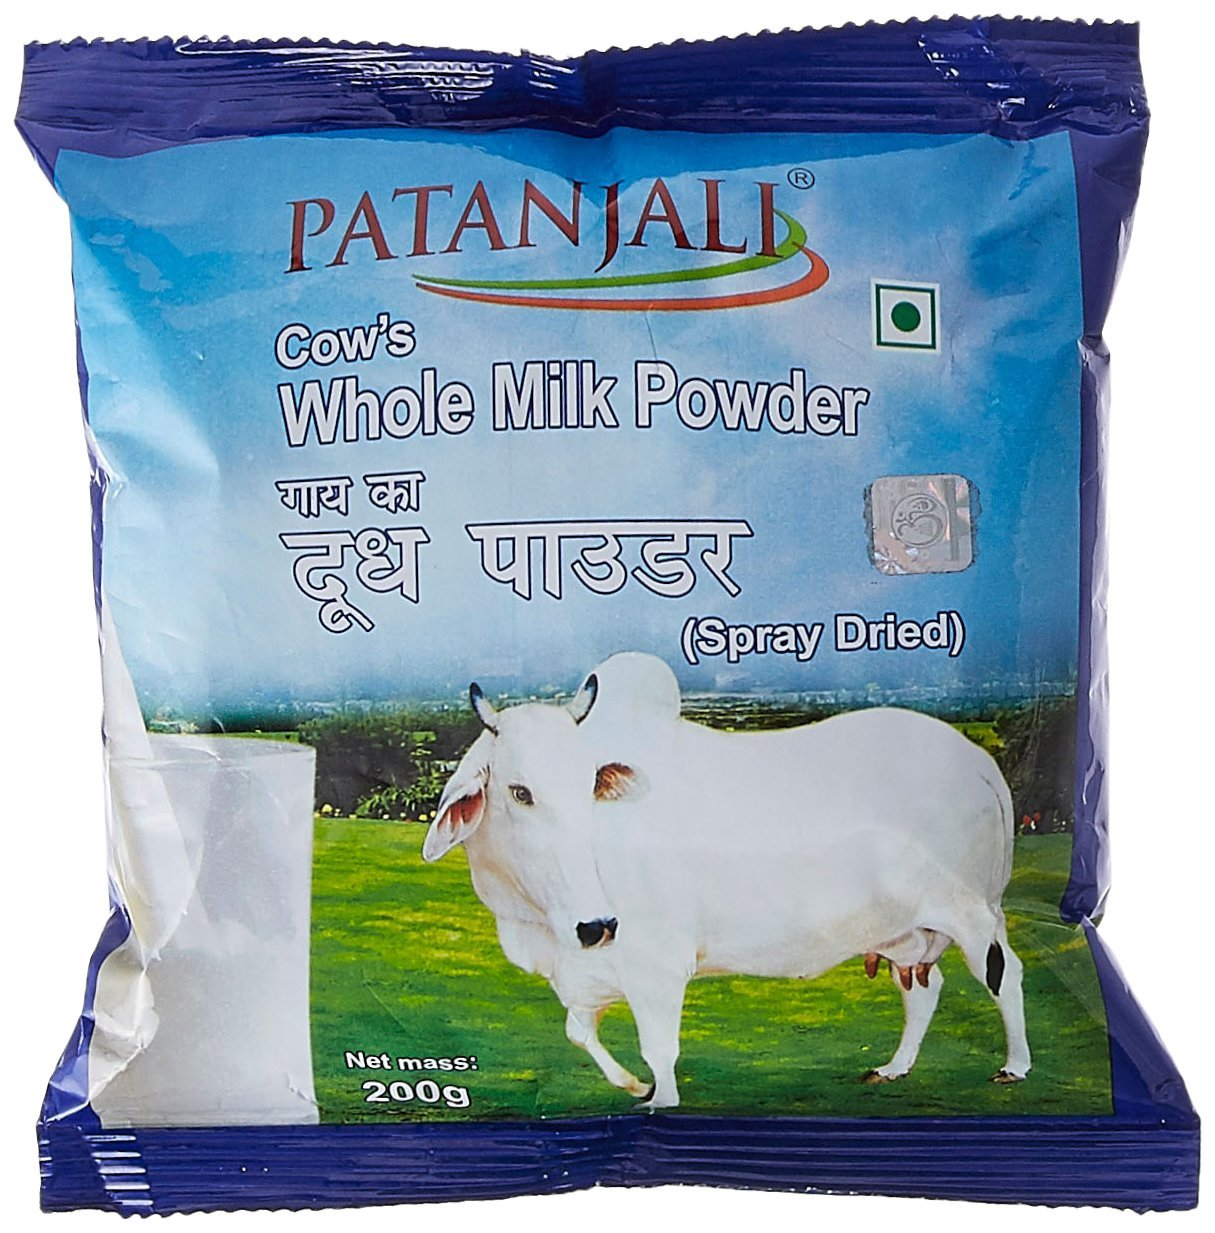 Patanjali Cow's Whole Milk Powder Image